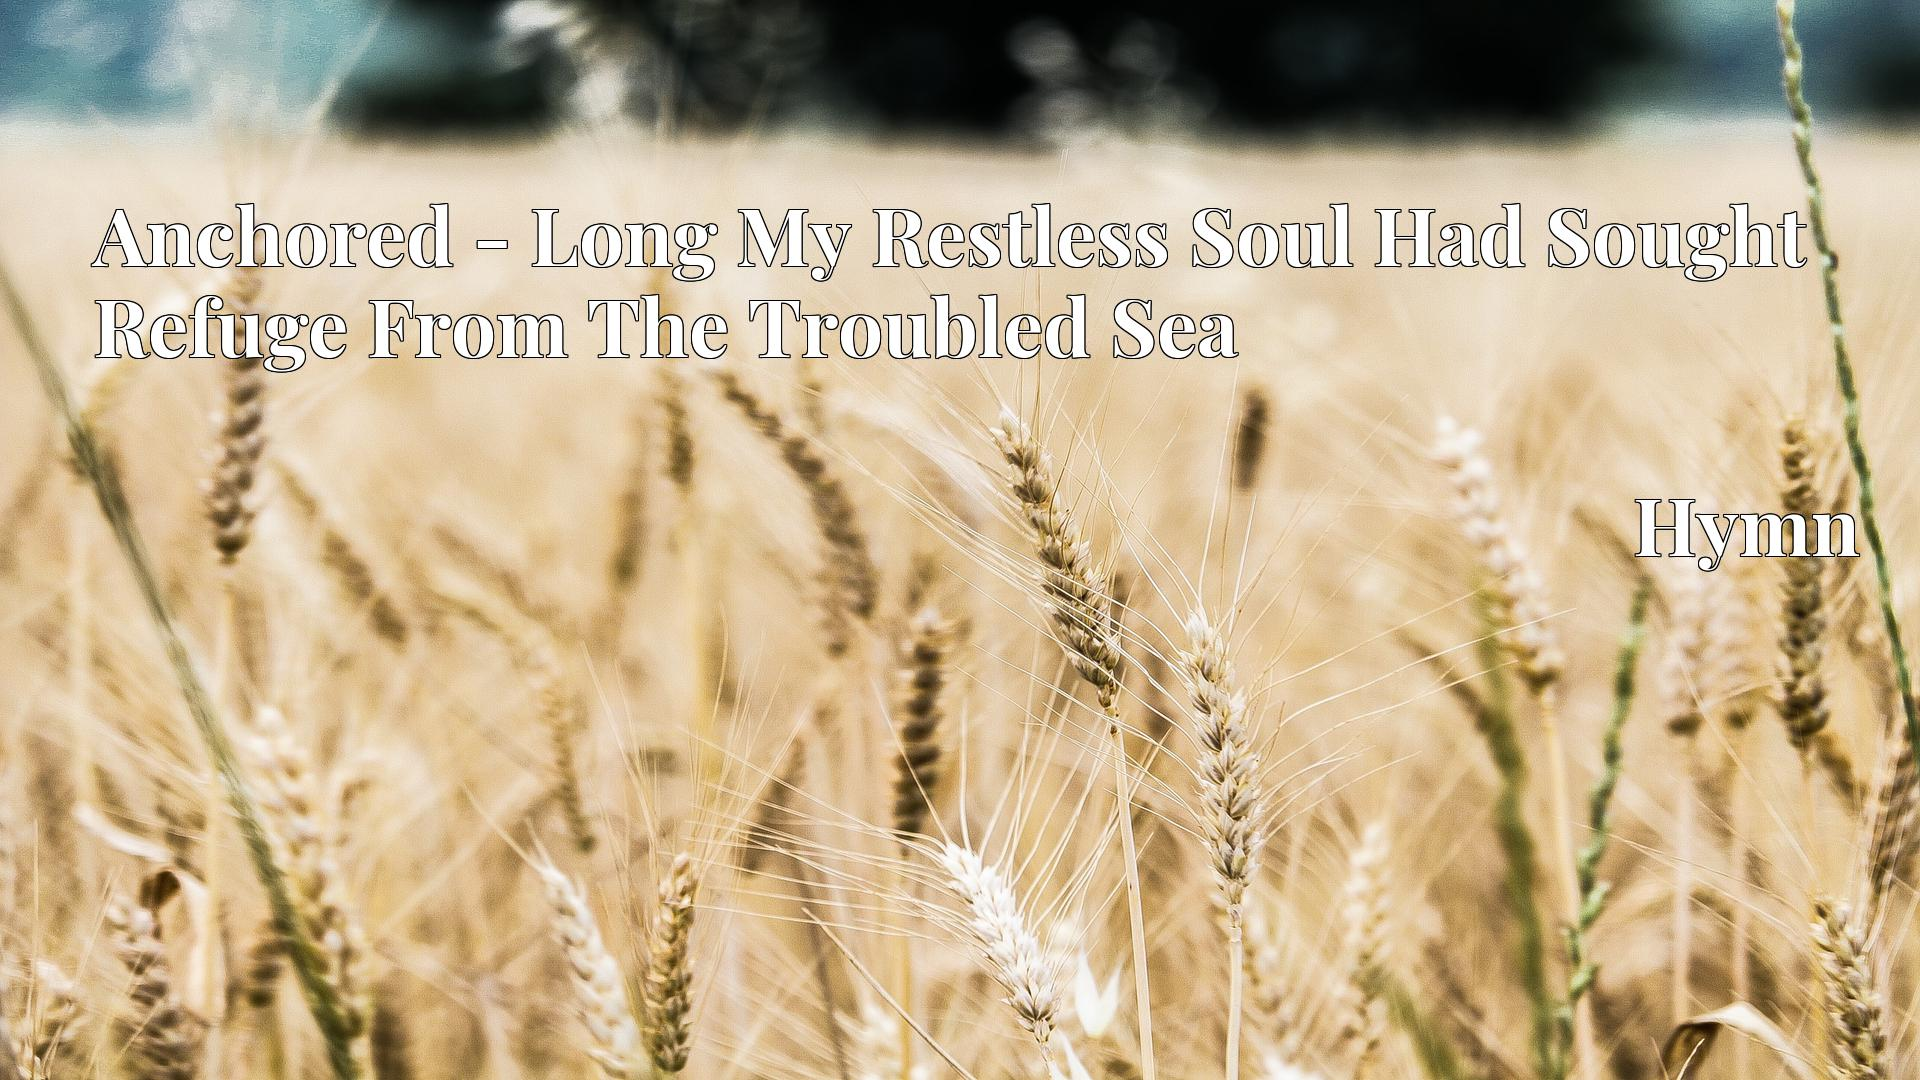 Anchored - Long My Restless Soul Had Sought Refuge From The Troubled Sea - Hymn